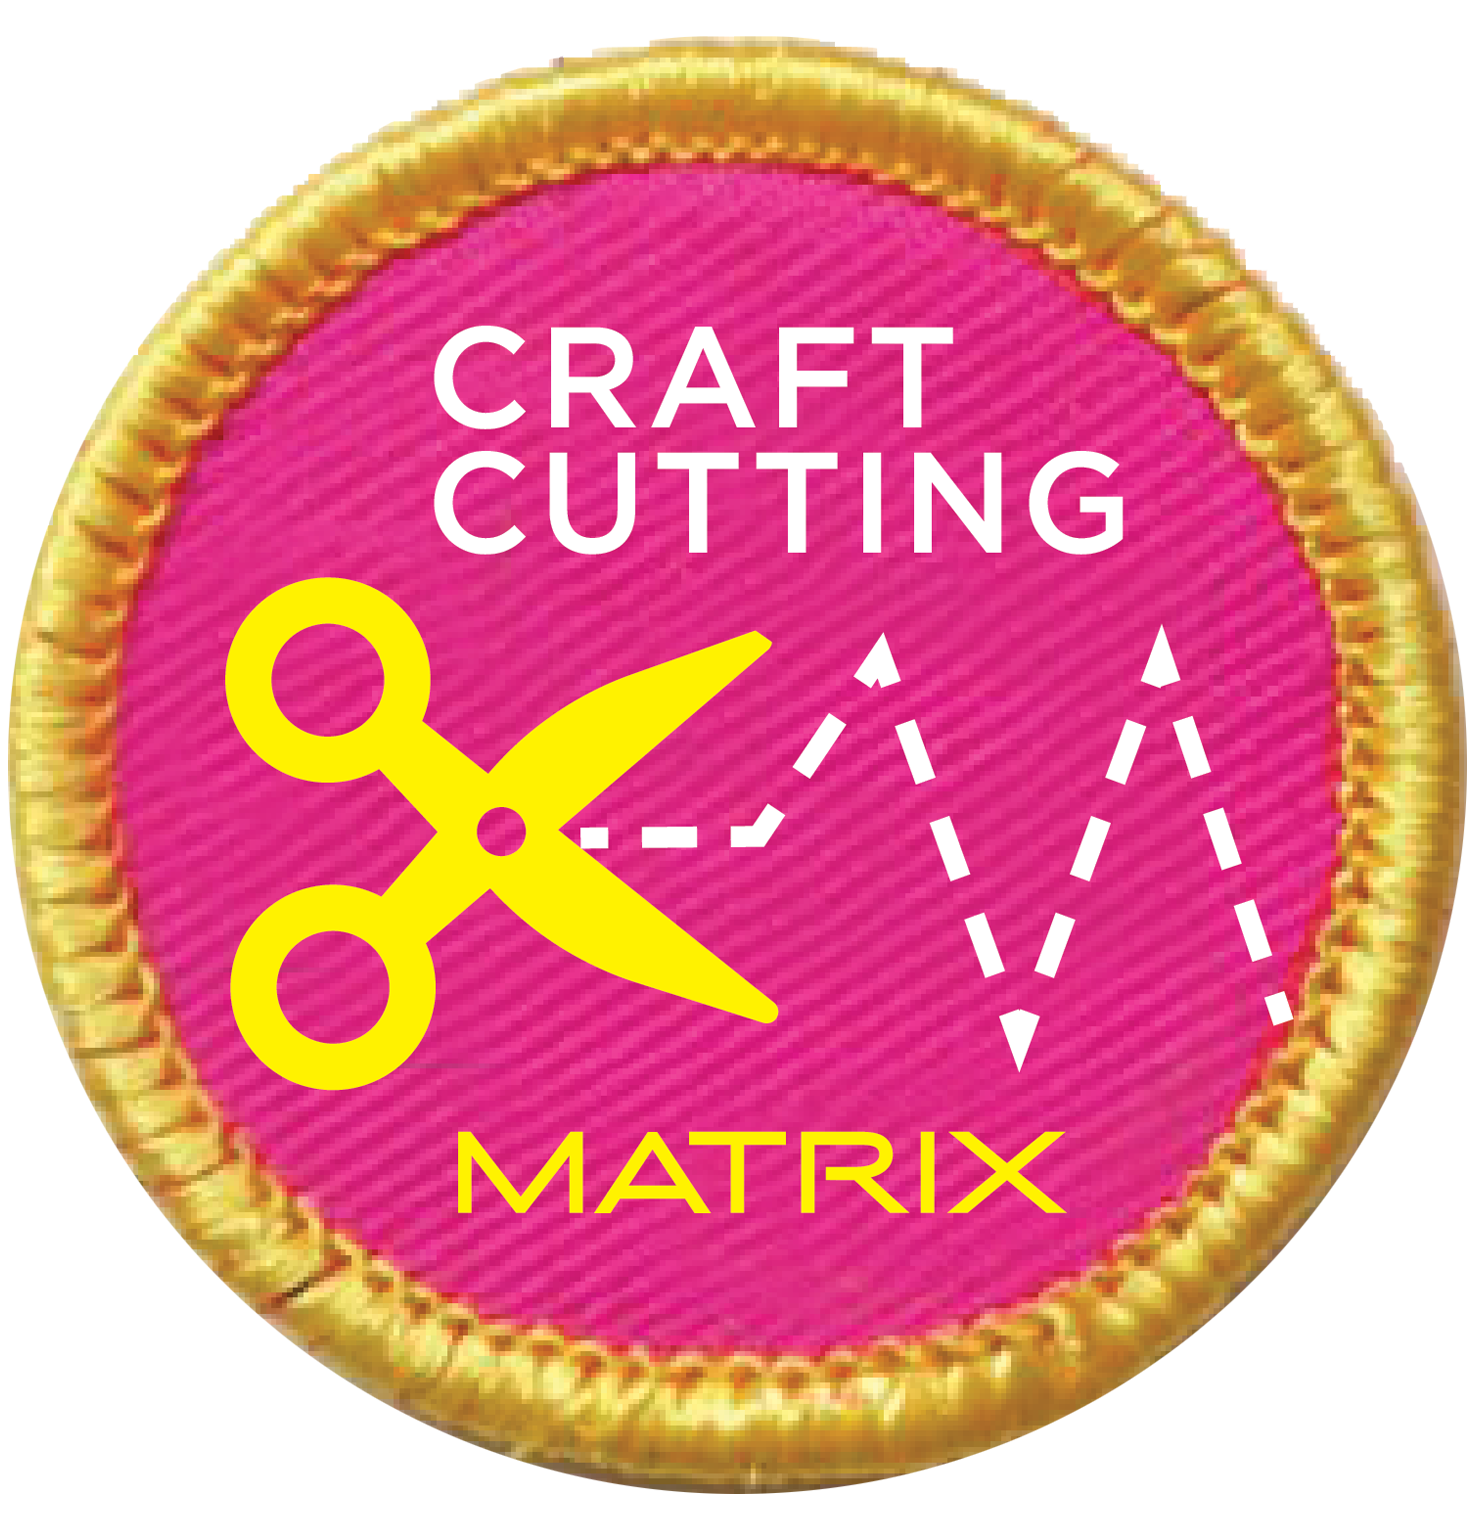 CRAFT CUTTING.png